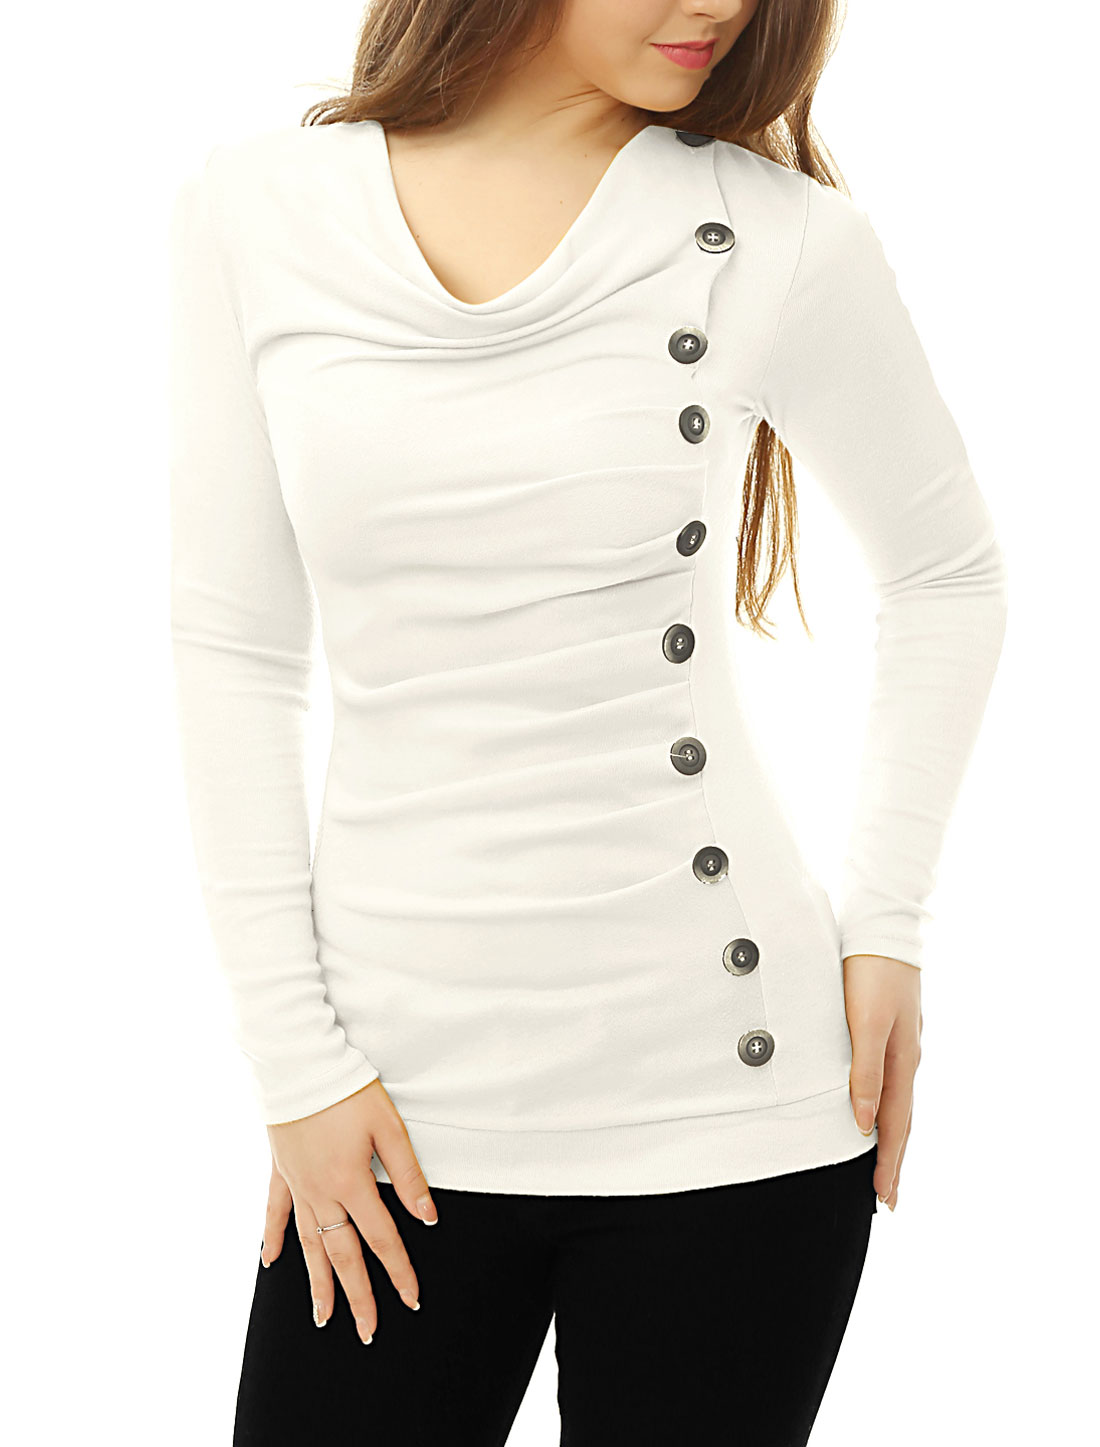 Allegra K Women Cowl Neck Long Sleeves Buttons Decor Ruched Top White XS